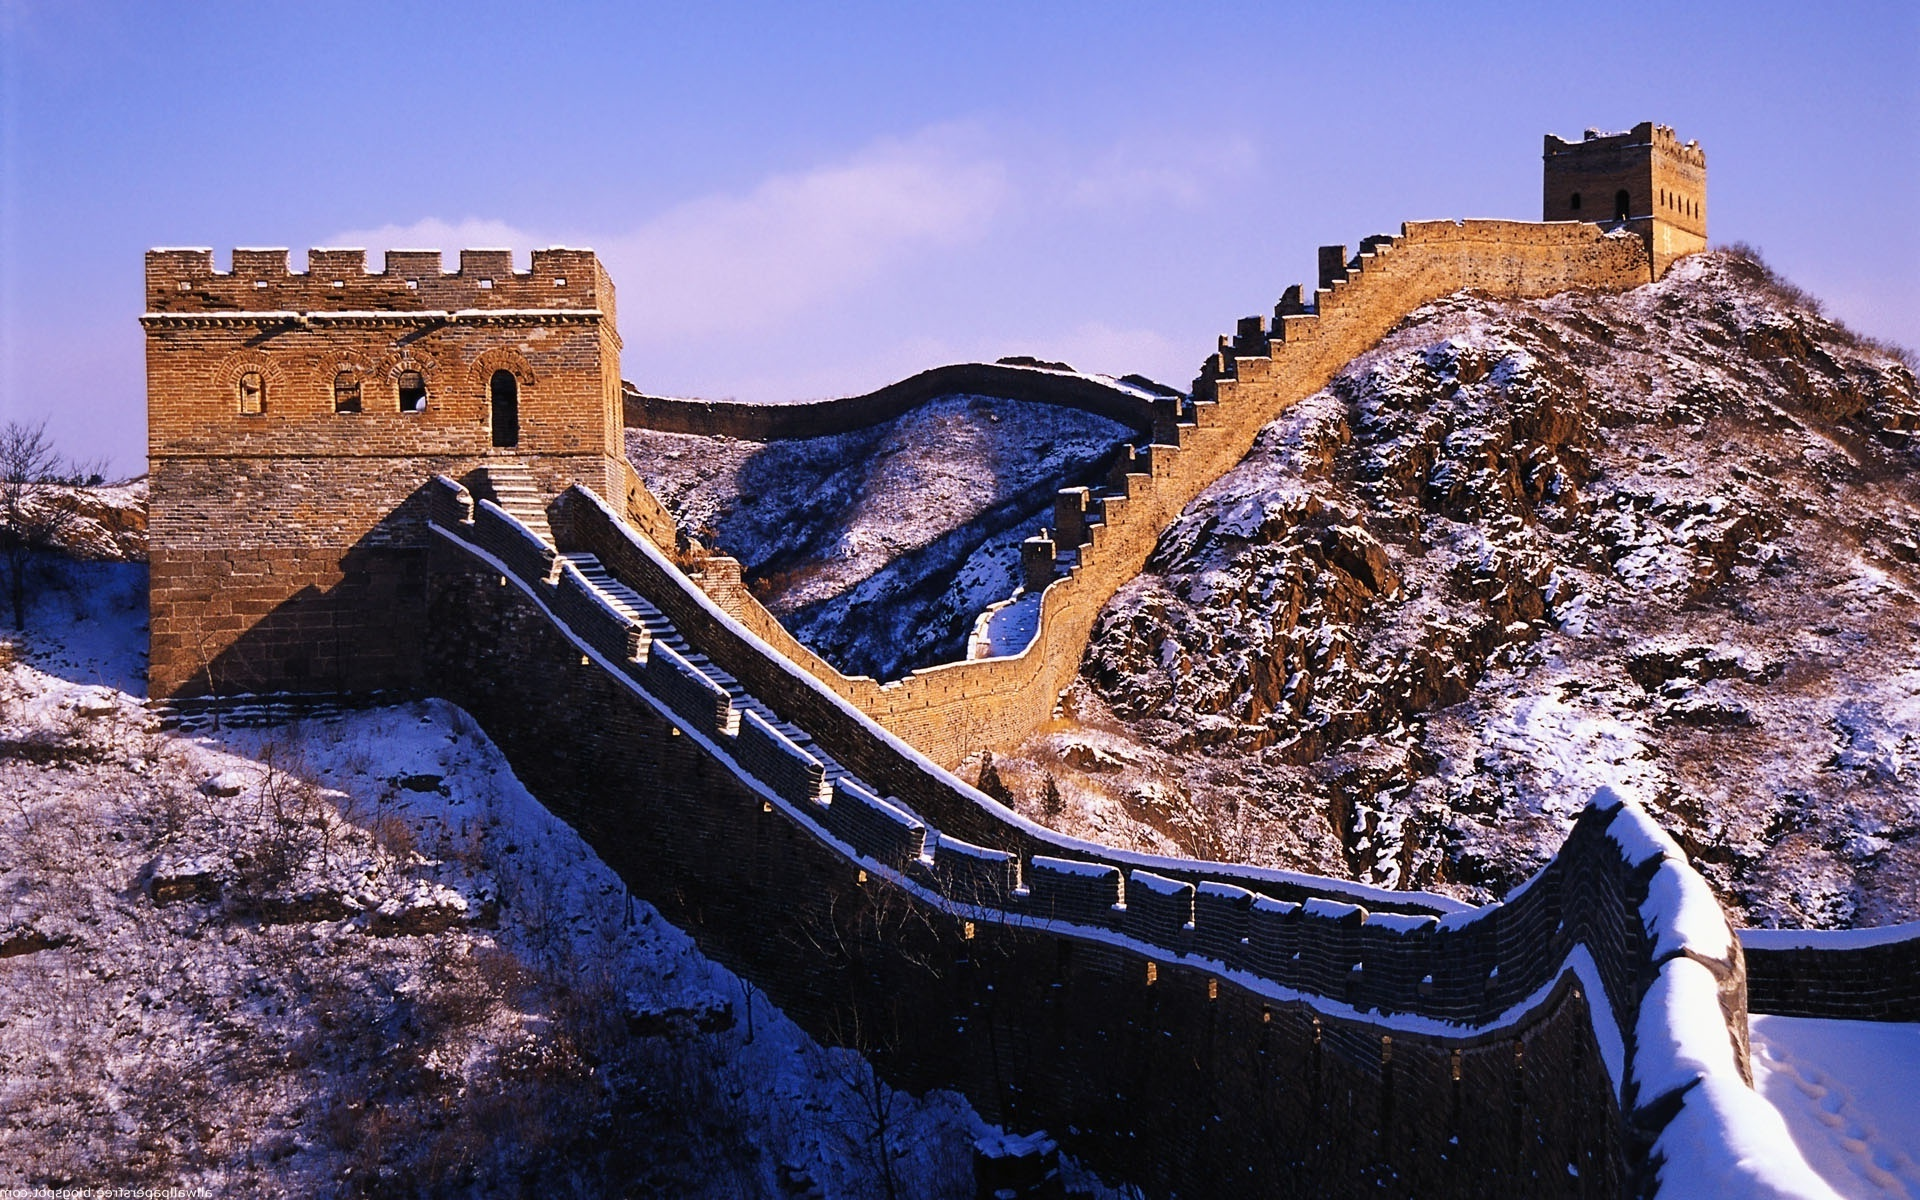 Great Wall Of China clipart Great Wall Of China Wallpaper High Resolution Collections CNSouP HD Wallpapers Great